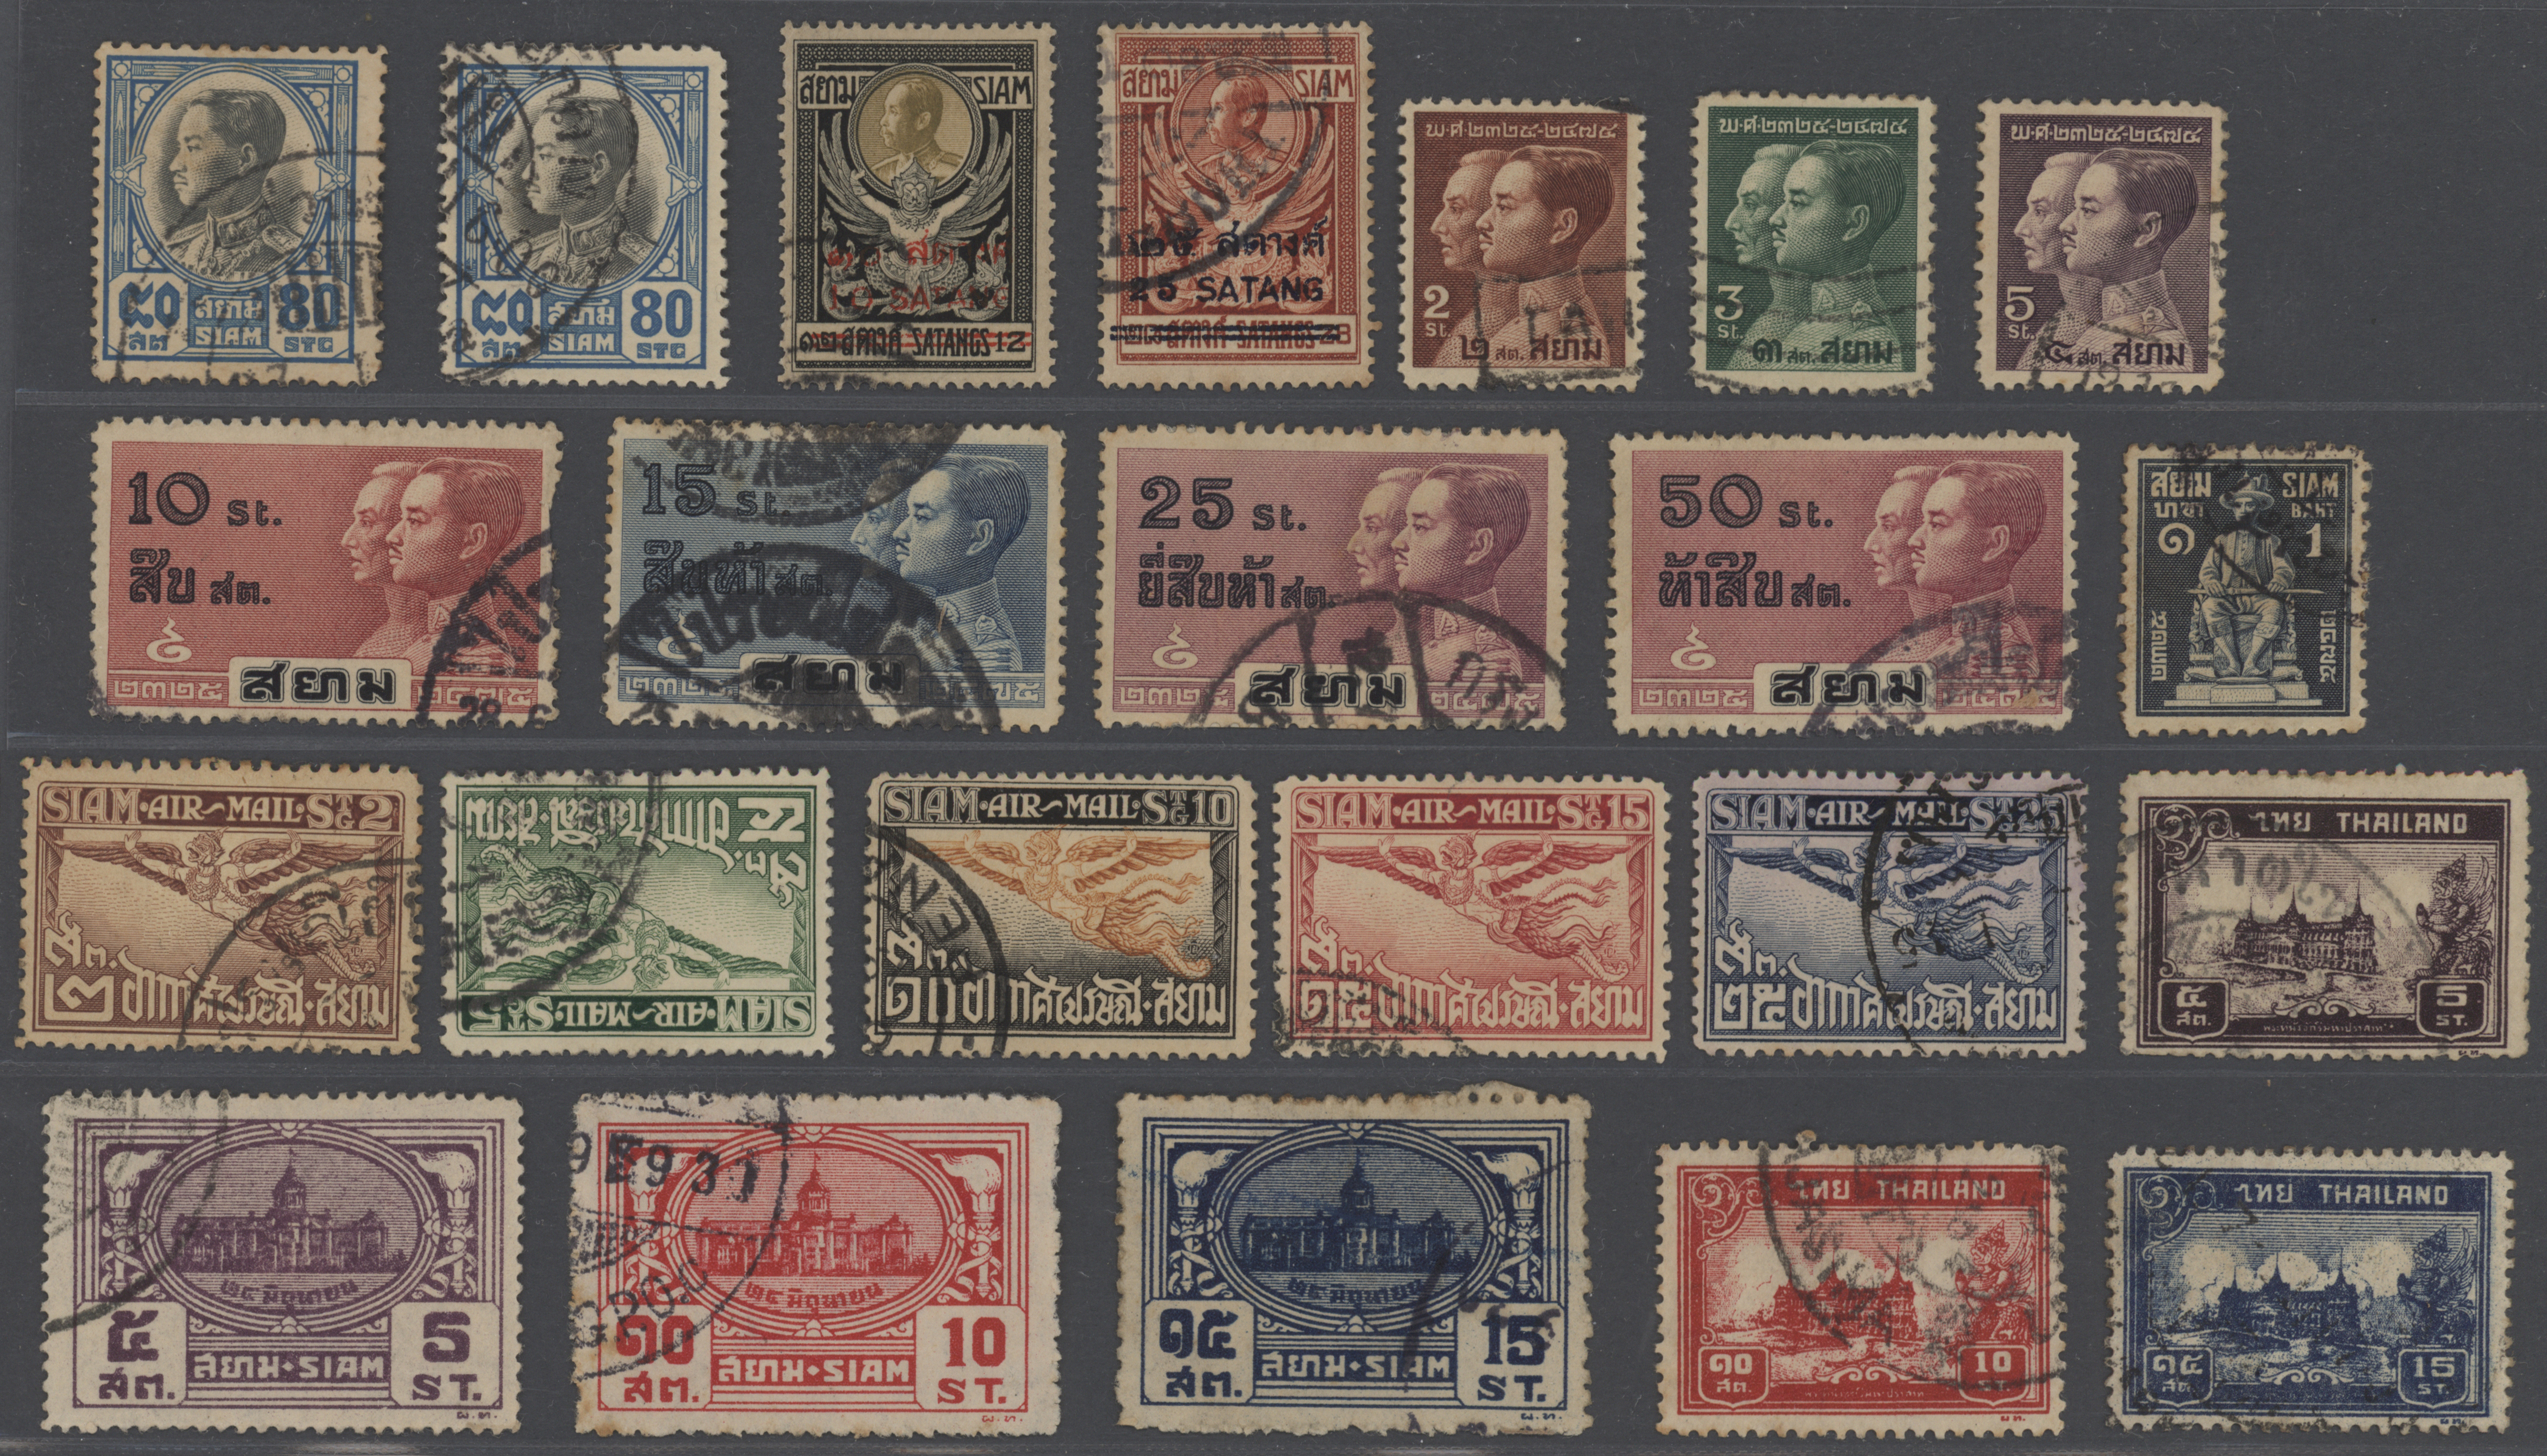 Lot 34616 - thailand  -  Auktionshaus Christoph Gärtner GmbH & Co. KG Collections Germany,  Collections Supplement, Surprise boxes #39 Day 7